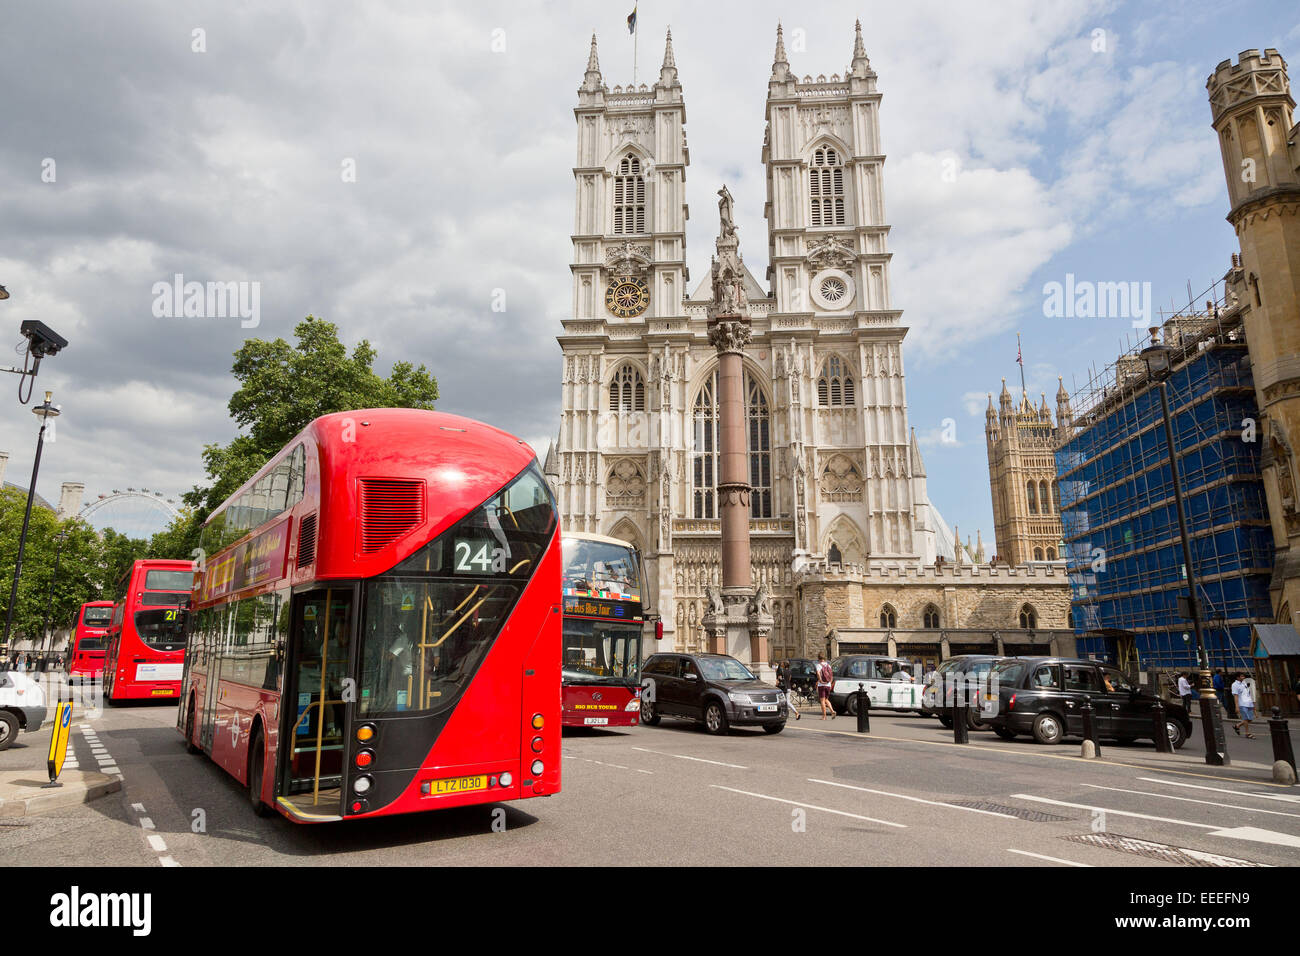 New Bus for London passing Westminster Abbey - Stock Image